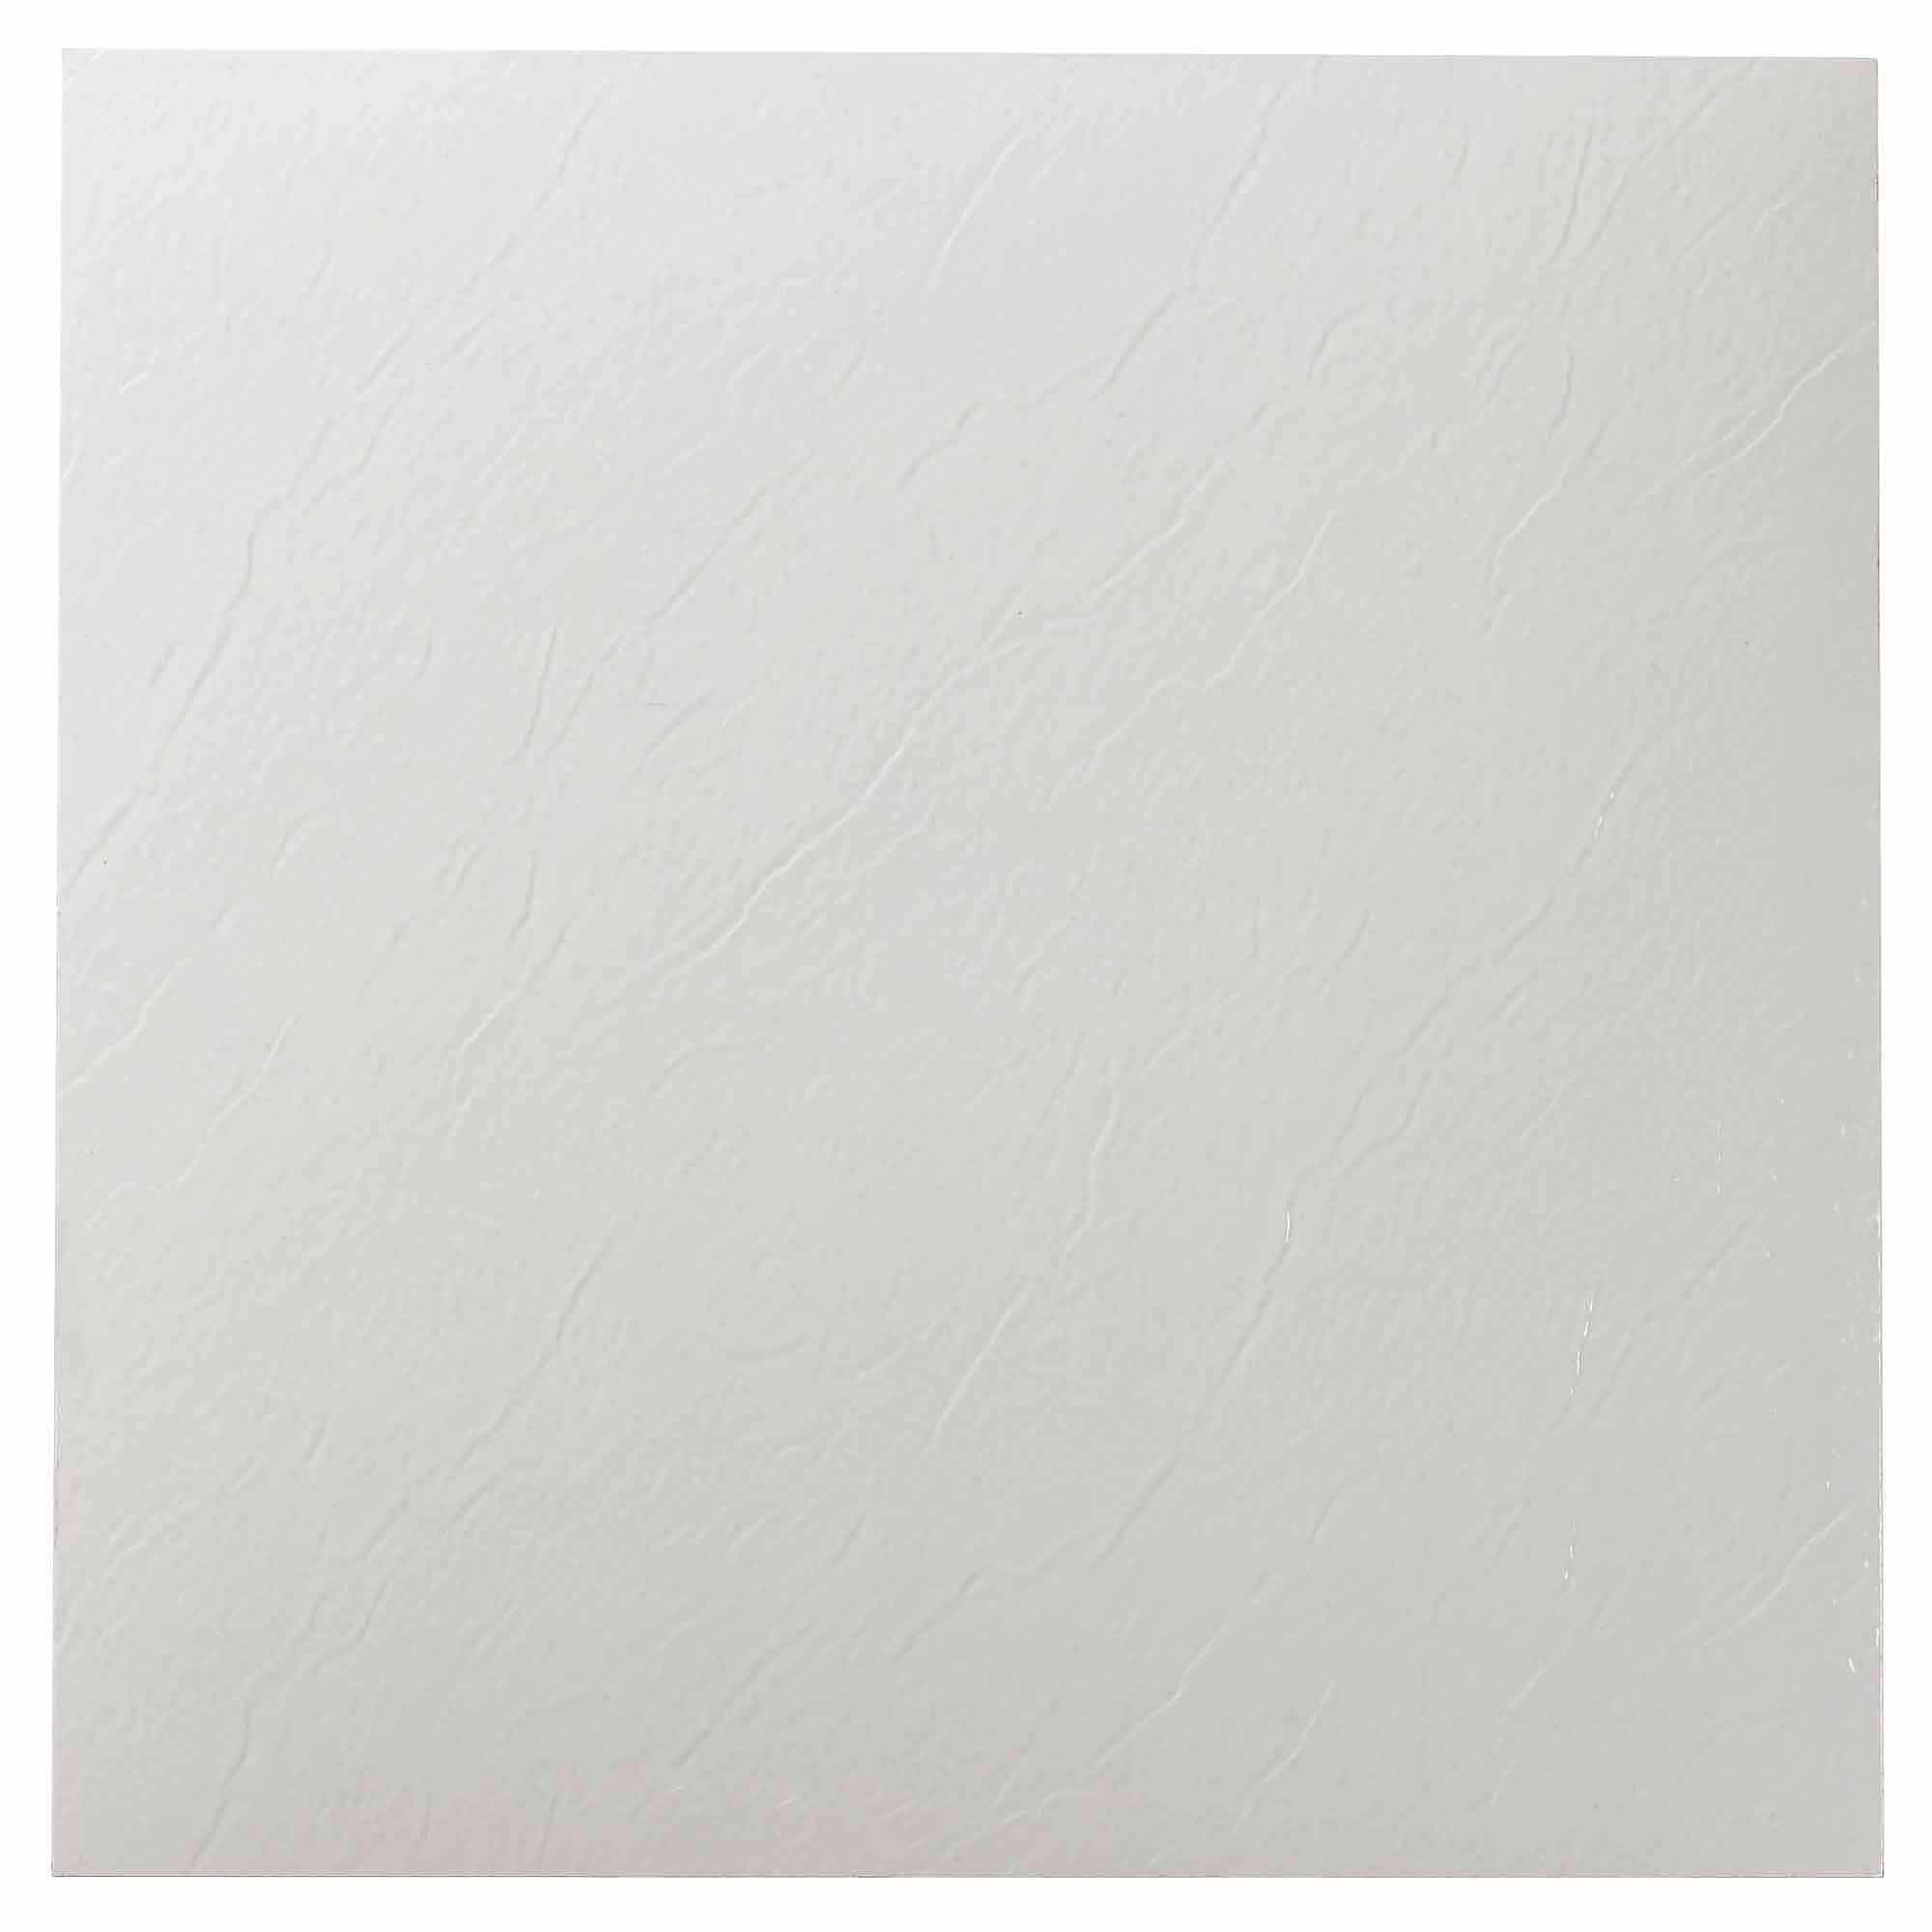 Nexus white 12x12 self adhesive vinyl floor tile 20 tiles20 sq nexus white 12x12 self adhesive vinyl floor tile 20 tiles20 sqft walmart doublecrazyfo Gallery